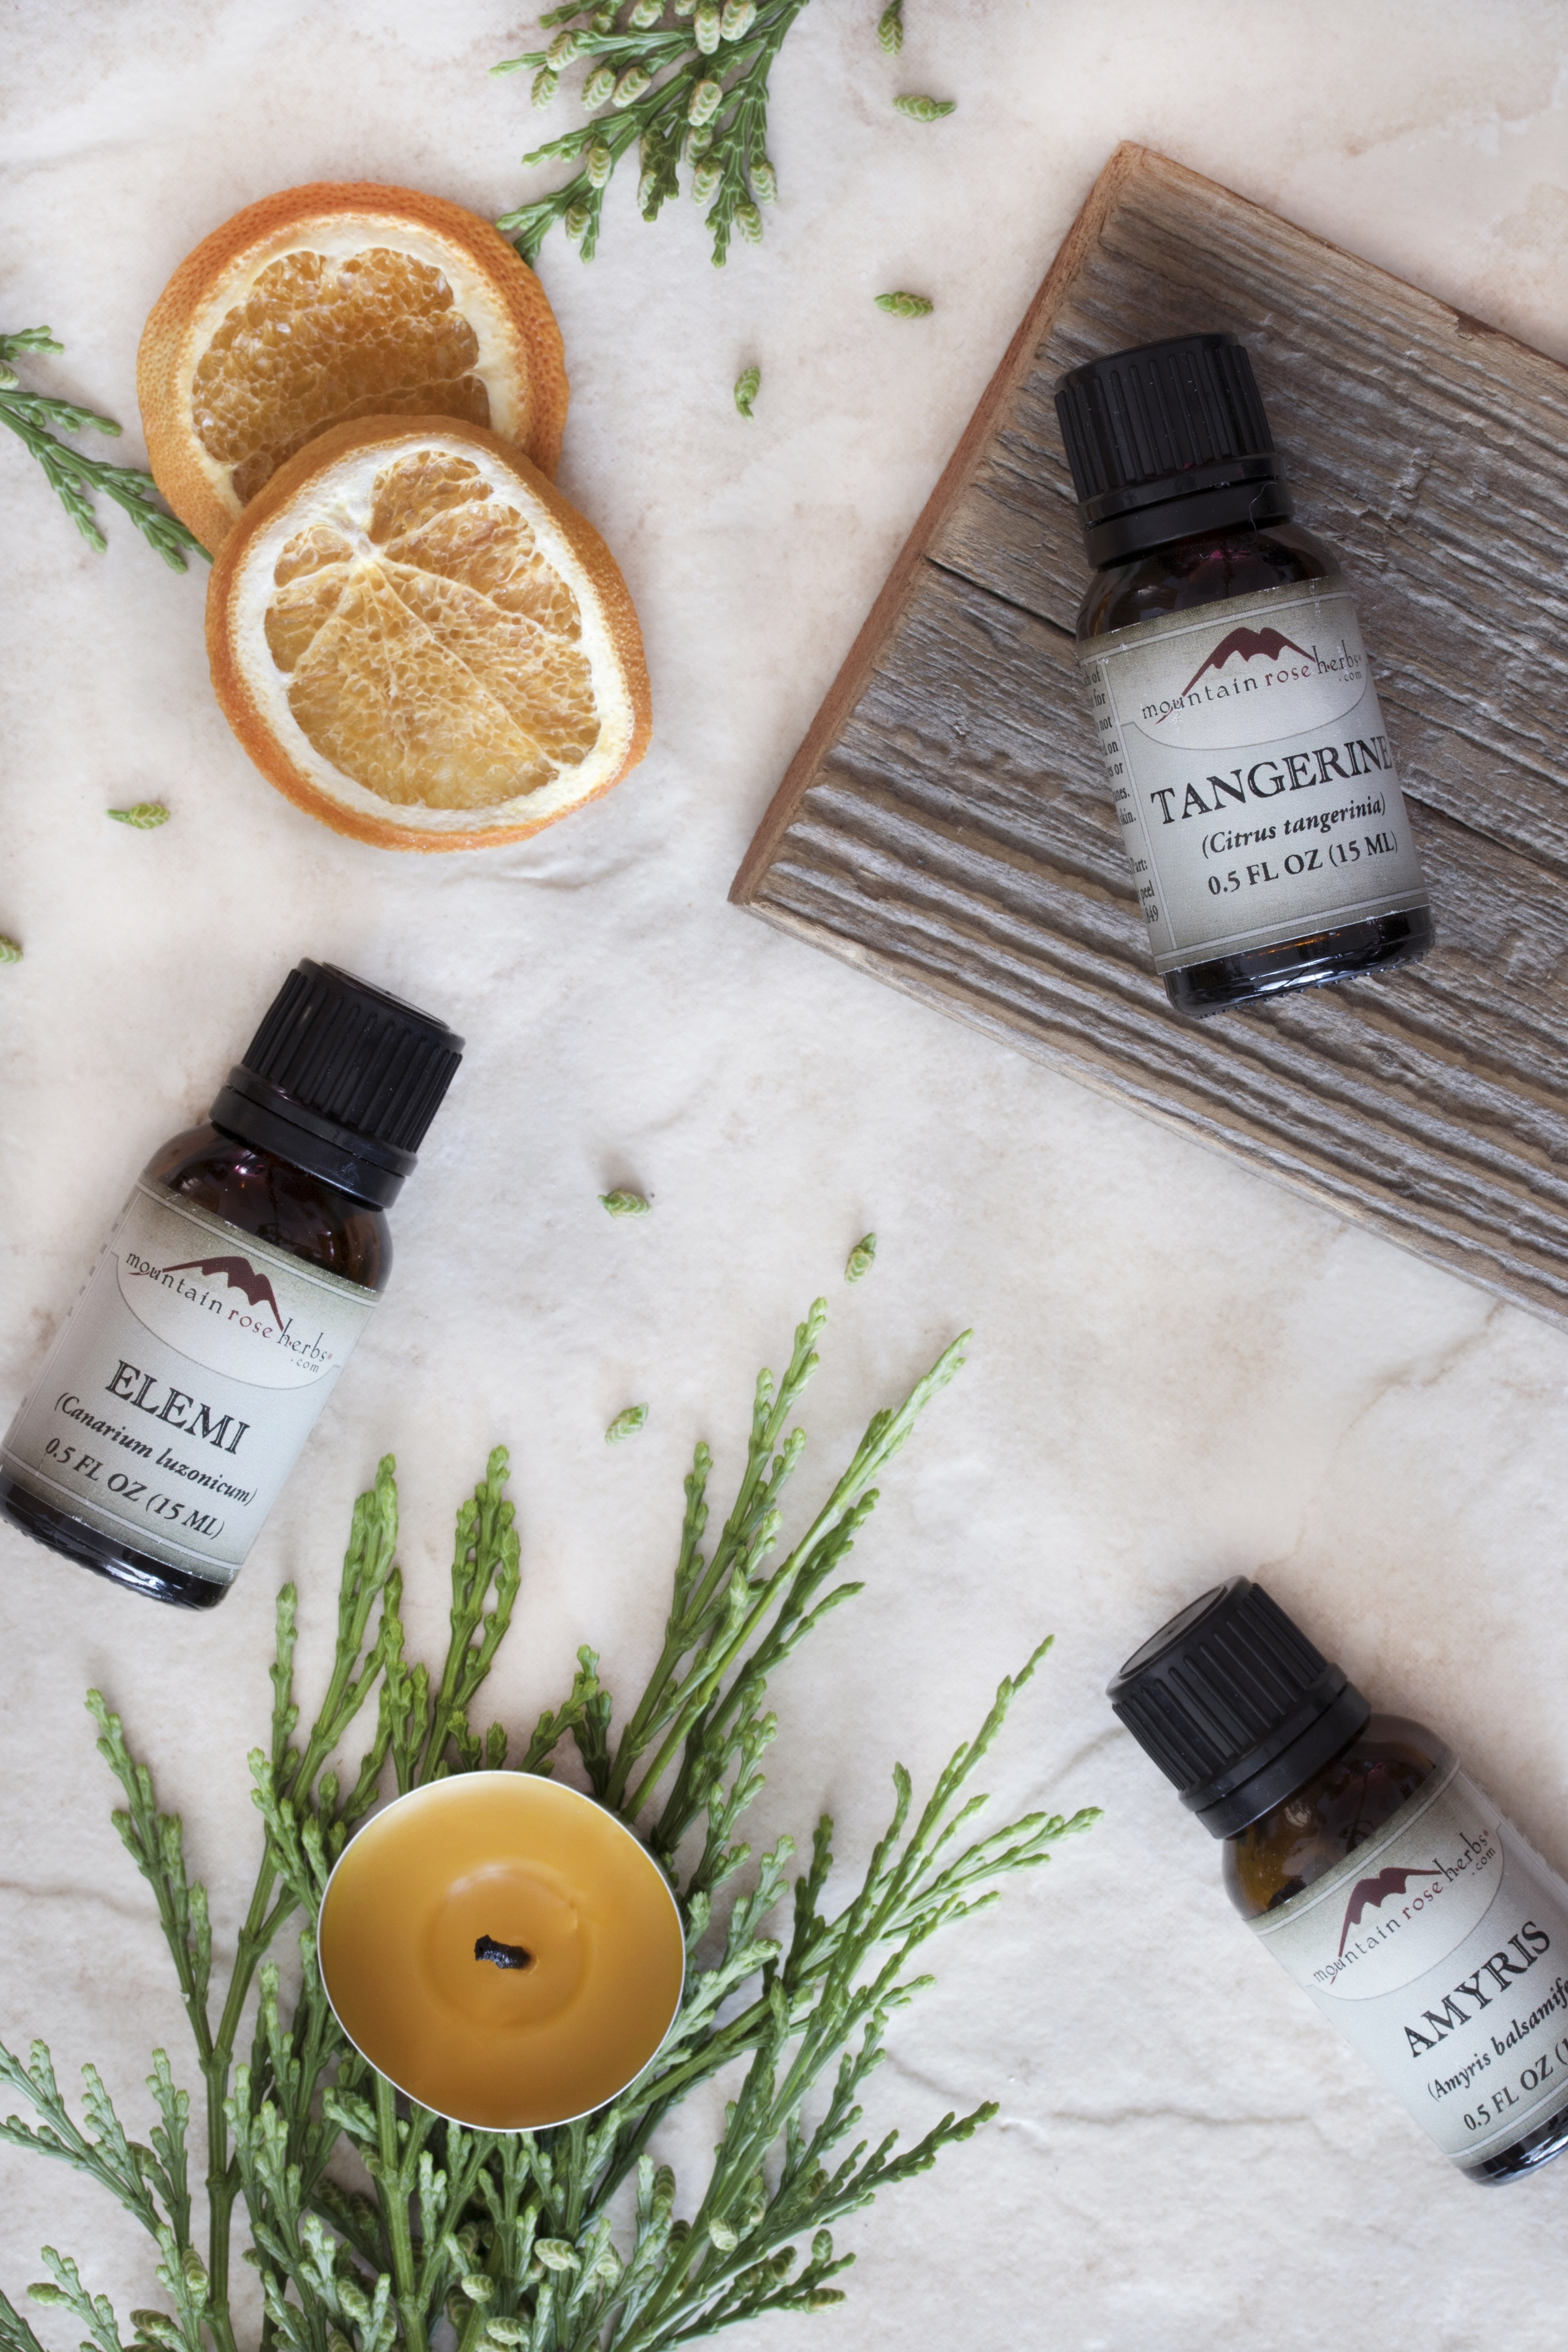 Variety of essential oils, elemi essential oil, tangerine essential oil, and amyris essential oil laying out on counter